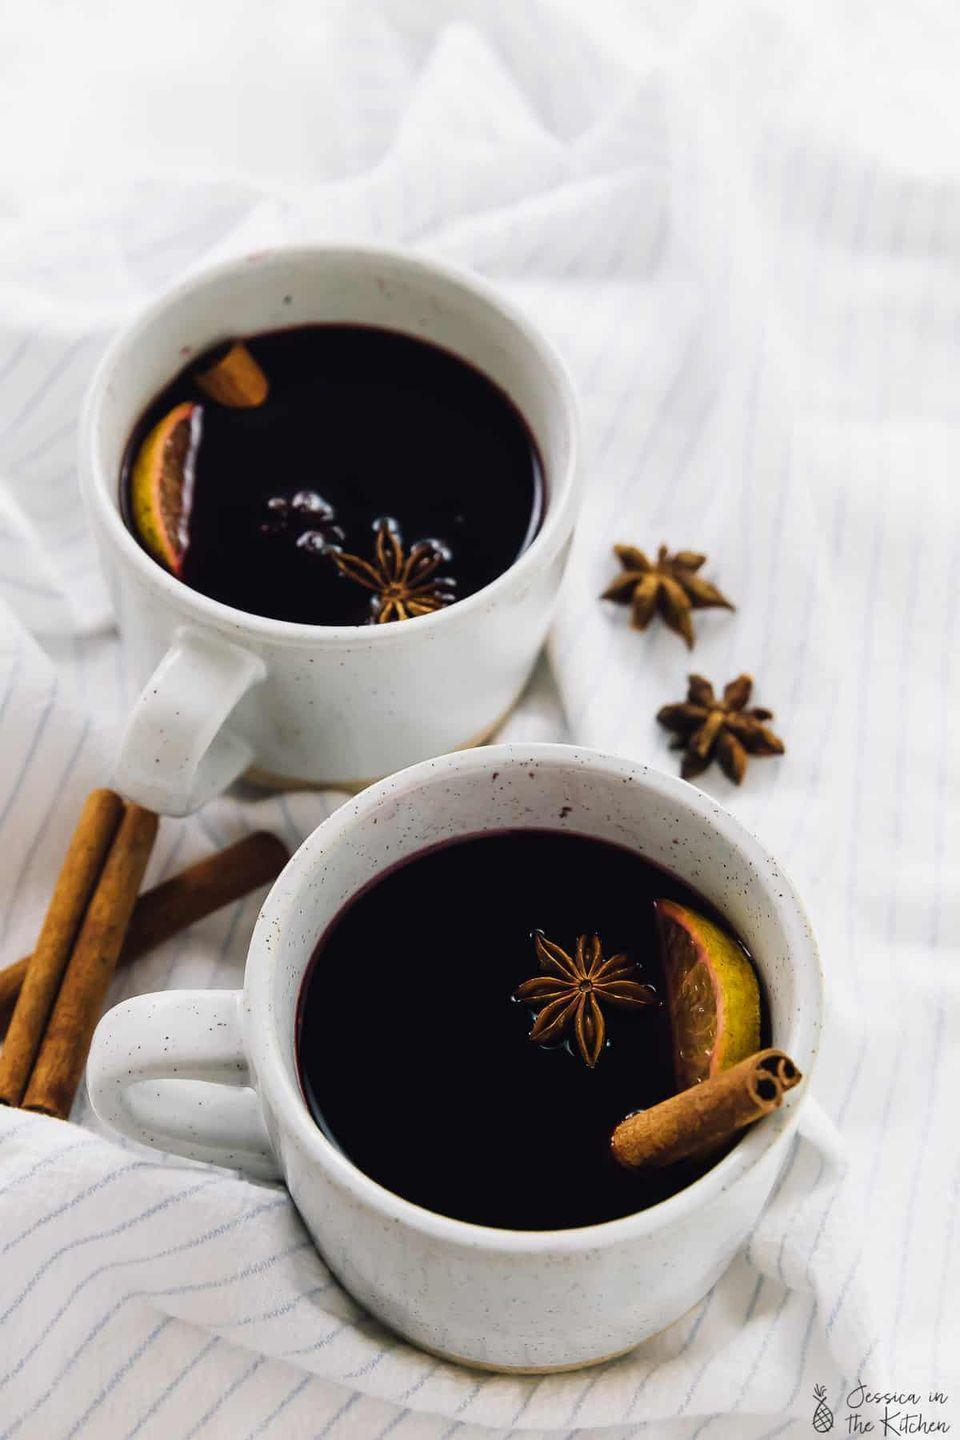 """<p>For a simple cocktail that will make your whole house smell like fall, simmer red wine with warm spices and a hint of citrus. </p><p><a class=""""link rapid-noclick-resp"""" href=""""https://jessicainthekitchen.com/spiced-mulled-wine/"""" rel=""""nofollow noopener"""" target=""""_blank"""" data-ylk=""""slk:GET THE RECIPE"""">GET THE RECIPE</a></p>"""